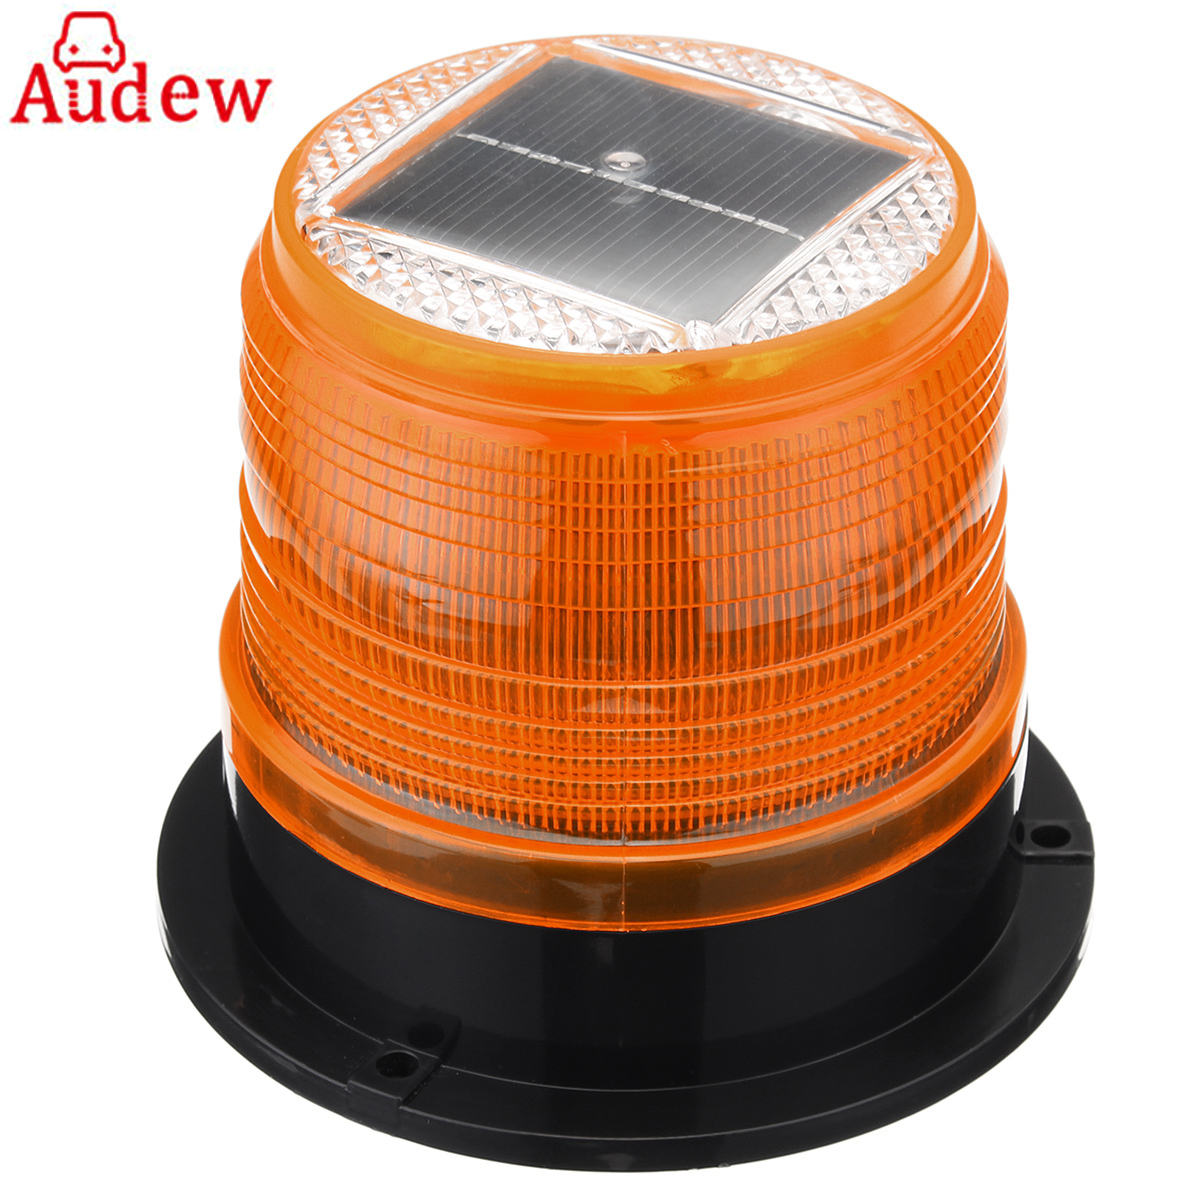 1Pcs Yellow Solar 6 LED Beacon Emergency Light Warning Strobe Lamp Roof Round Waterproof Solar panels For Car Truck caravan Bus 6units case rechargeable roadway traffic safety led anti collision warning lights beacon roof emergency light waterproof